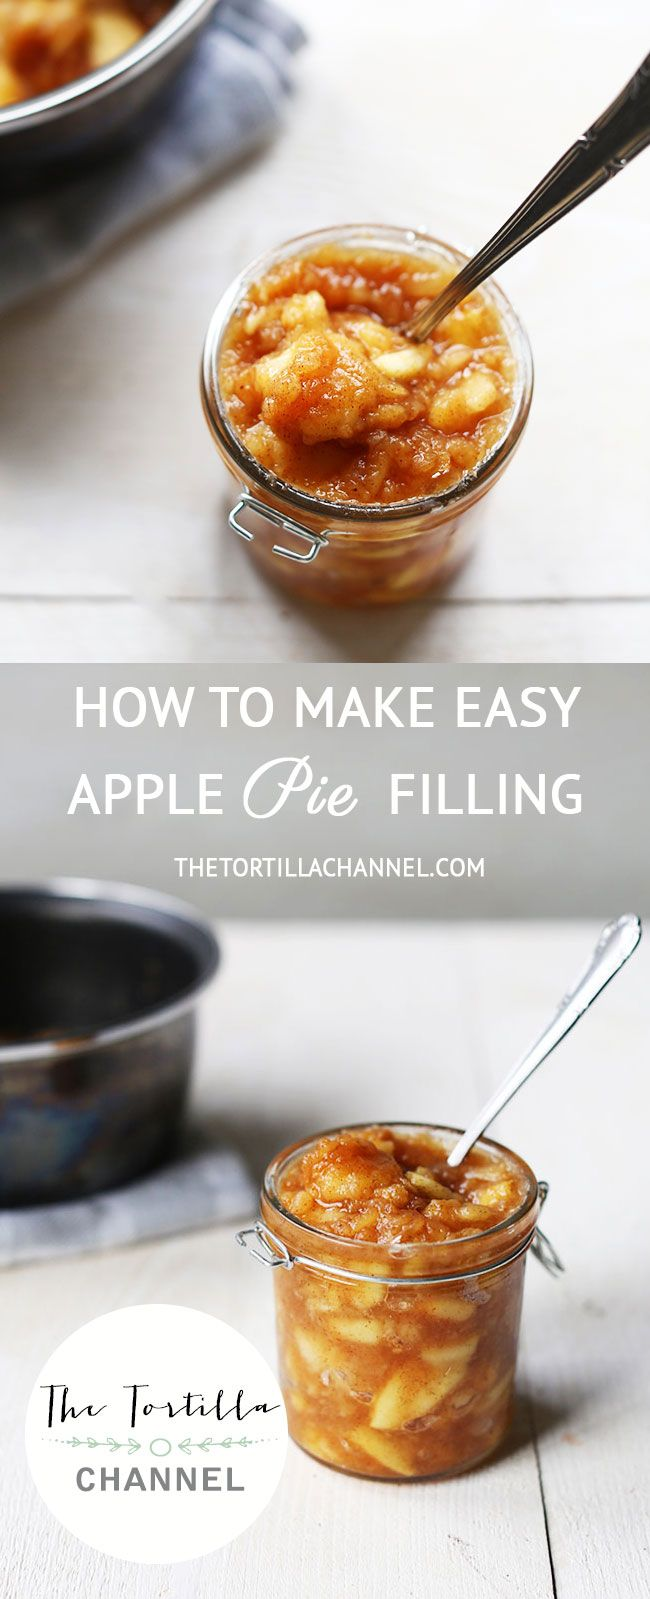 Easy apple pie filling recipe.  All you need is apple and less than 15 minutes to make a delicious apple pie filling. Great with taquitos or beignets.  For the full recipe visit thetortillachannel.com or pin it now so you can use it later.